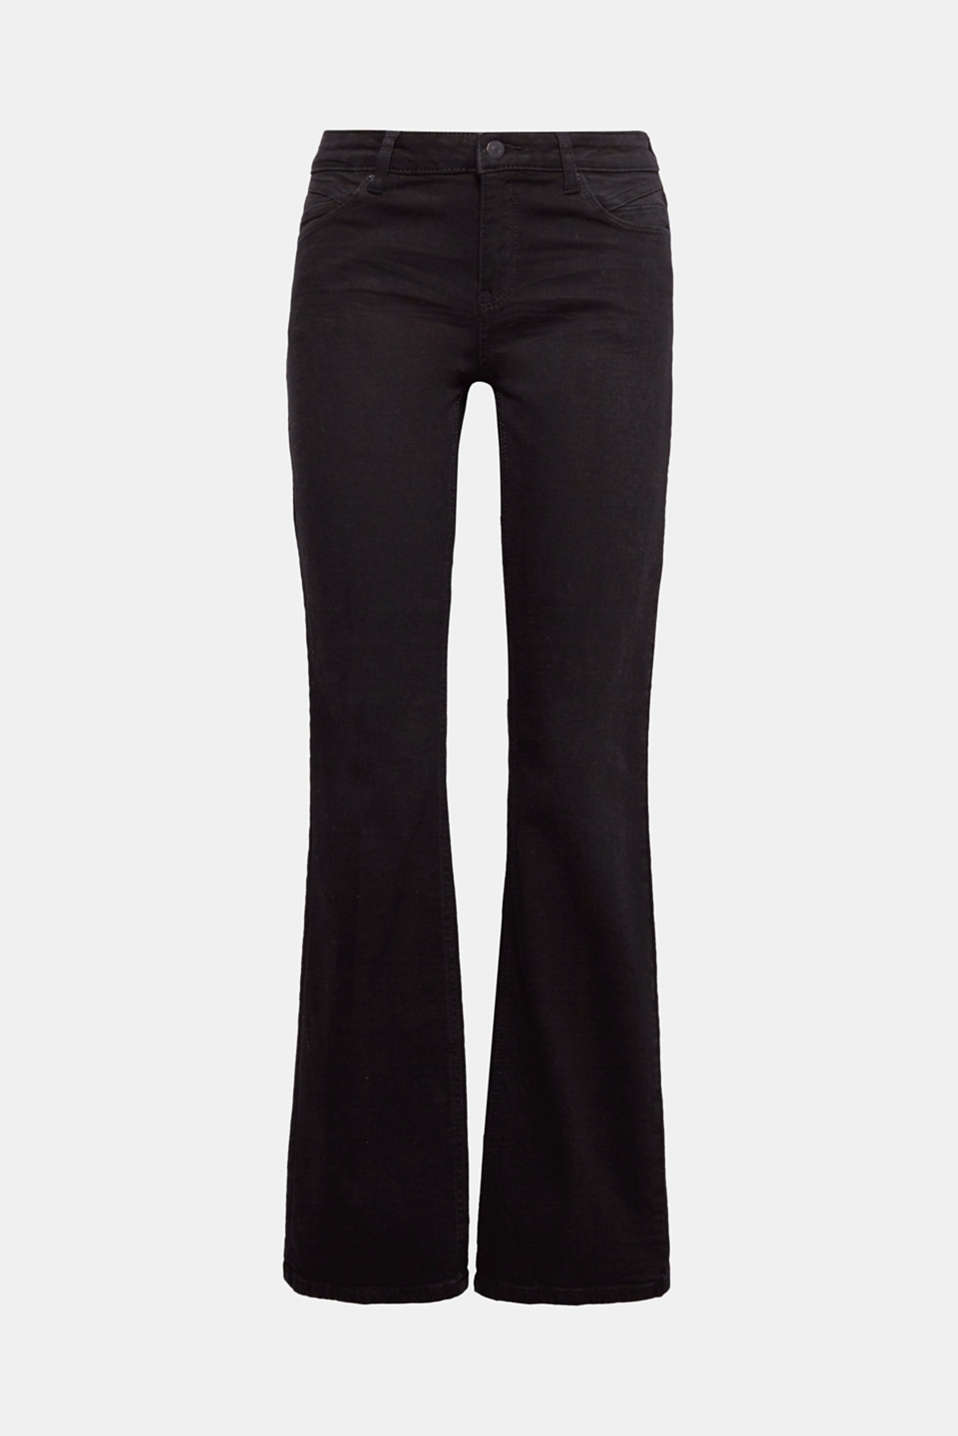 Create a sensational silhouette: jet black stretch jeans in a clean style, subtle bootcut